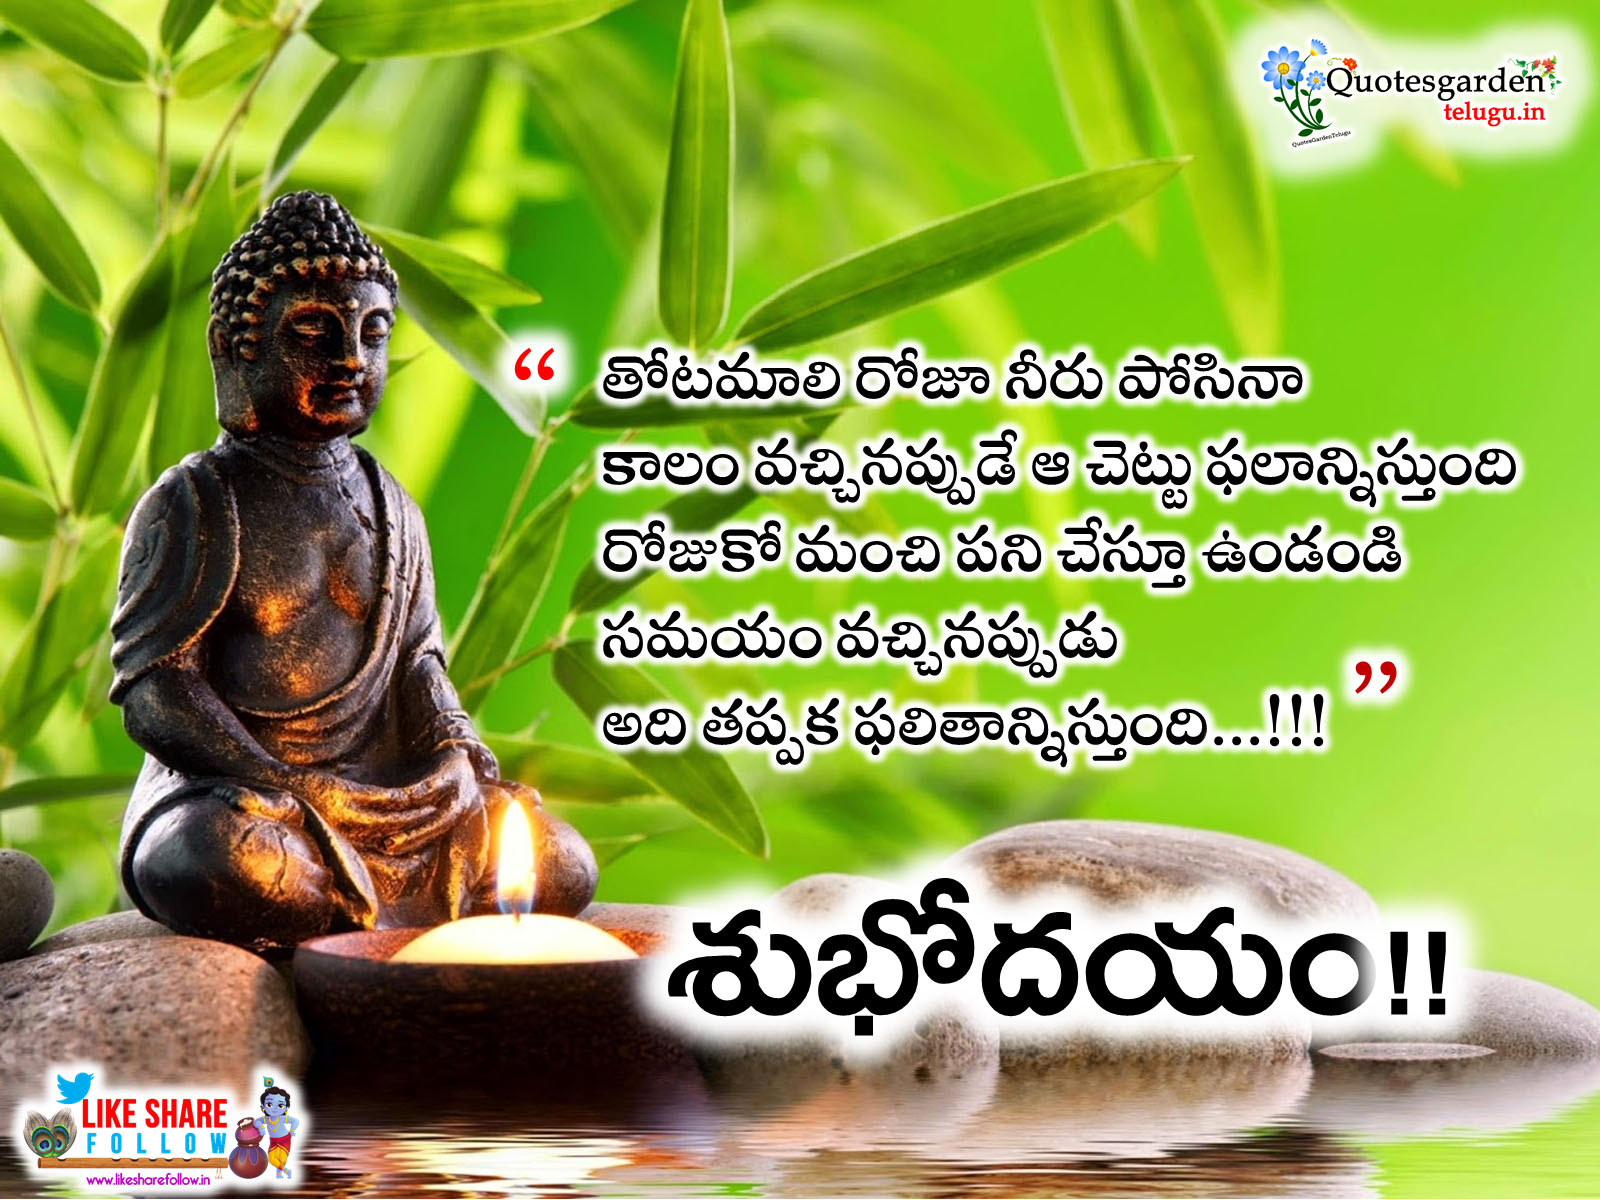 Good Morning Inspirational Quotes In Telugu 384 Like Share Follow